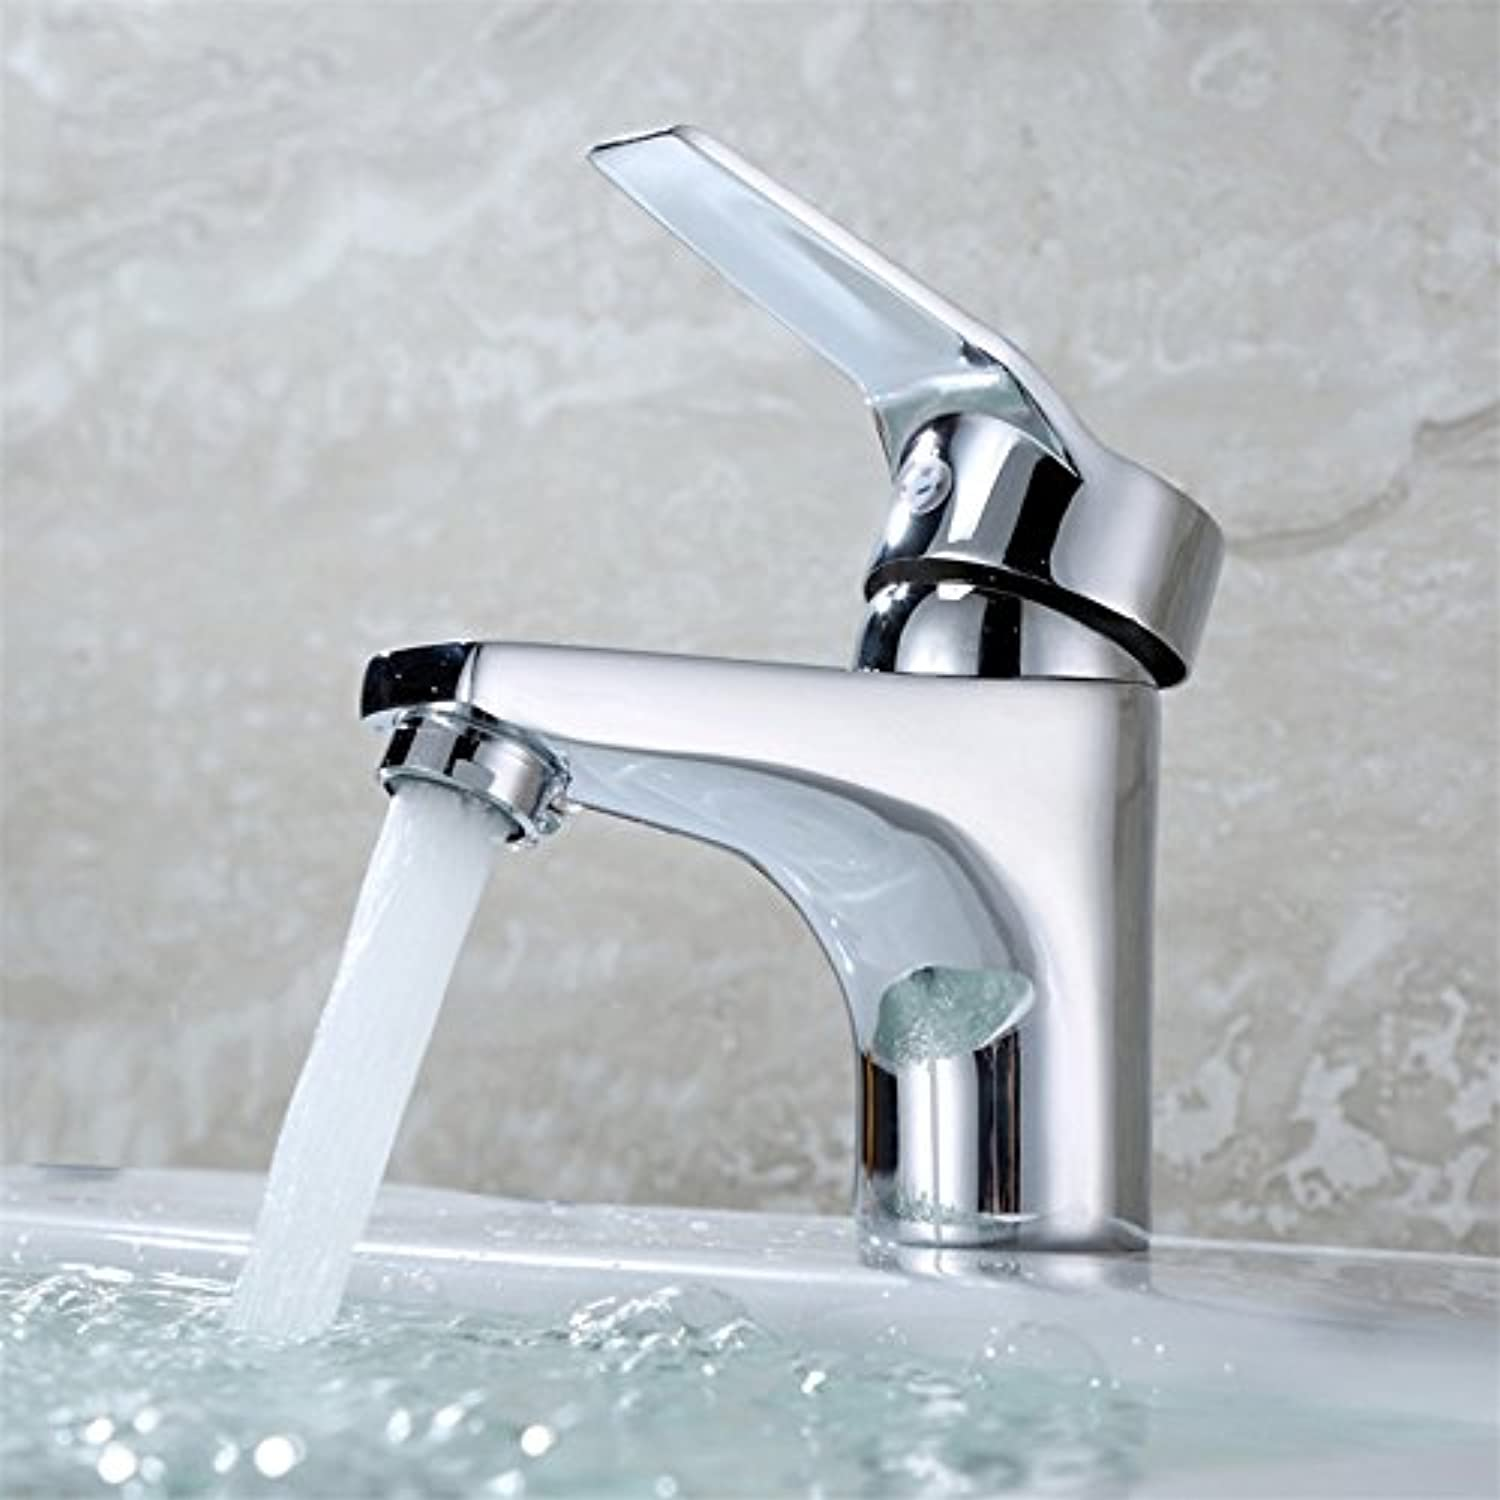 Retro Deluxe Faucetinging Kitchen Faucet Superior in Quality Chrome Polished Basin Faucet Hot and Cold Water Swivel Single Handle Mixer Tap